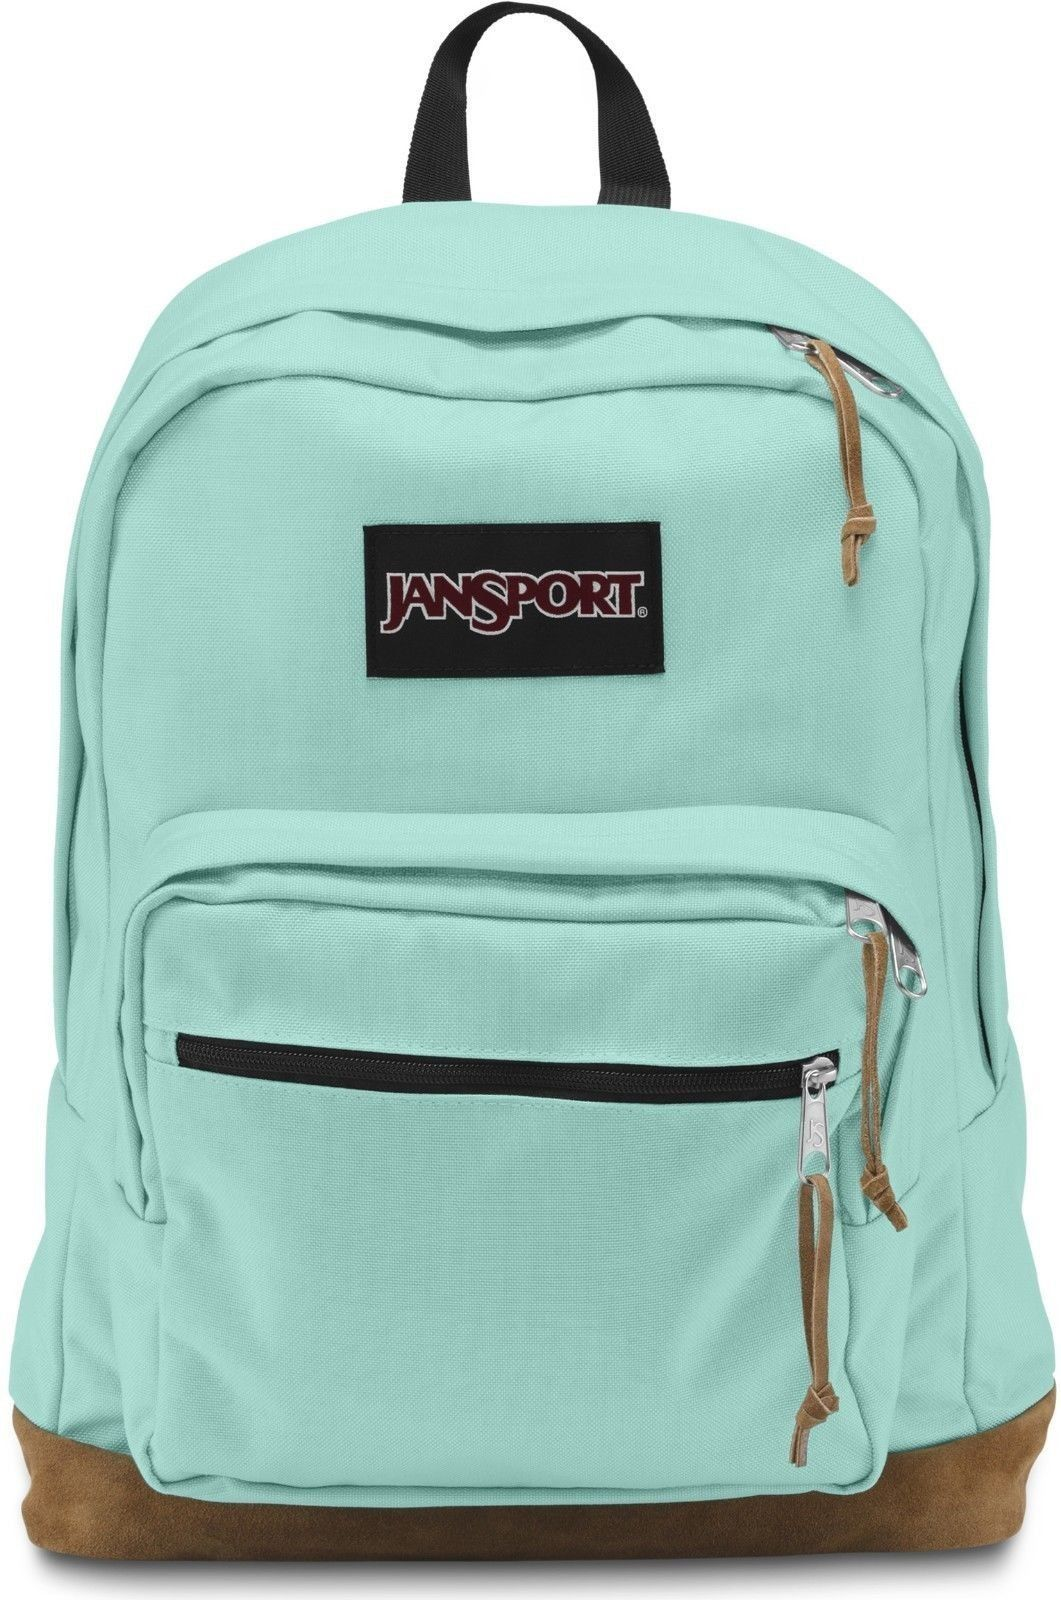 Where Can You Buy Jansport Backpacks LhNIa4vM